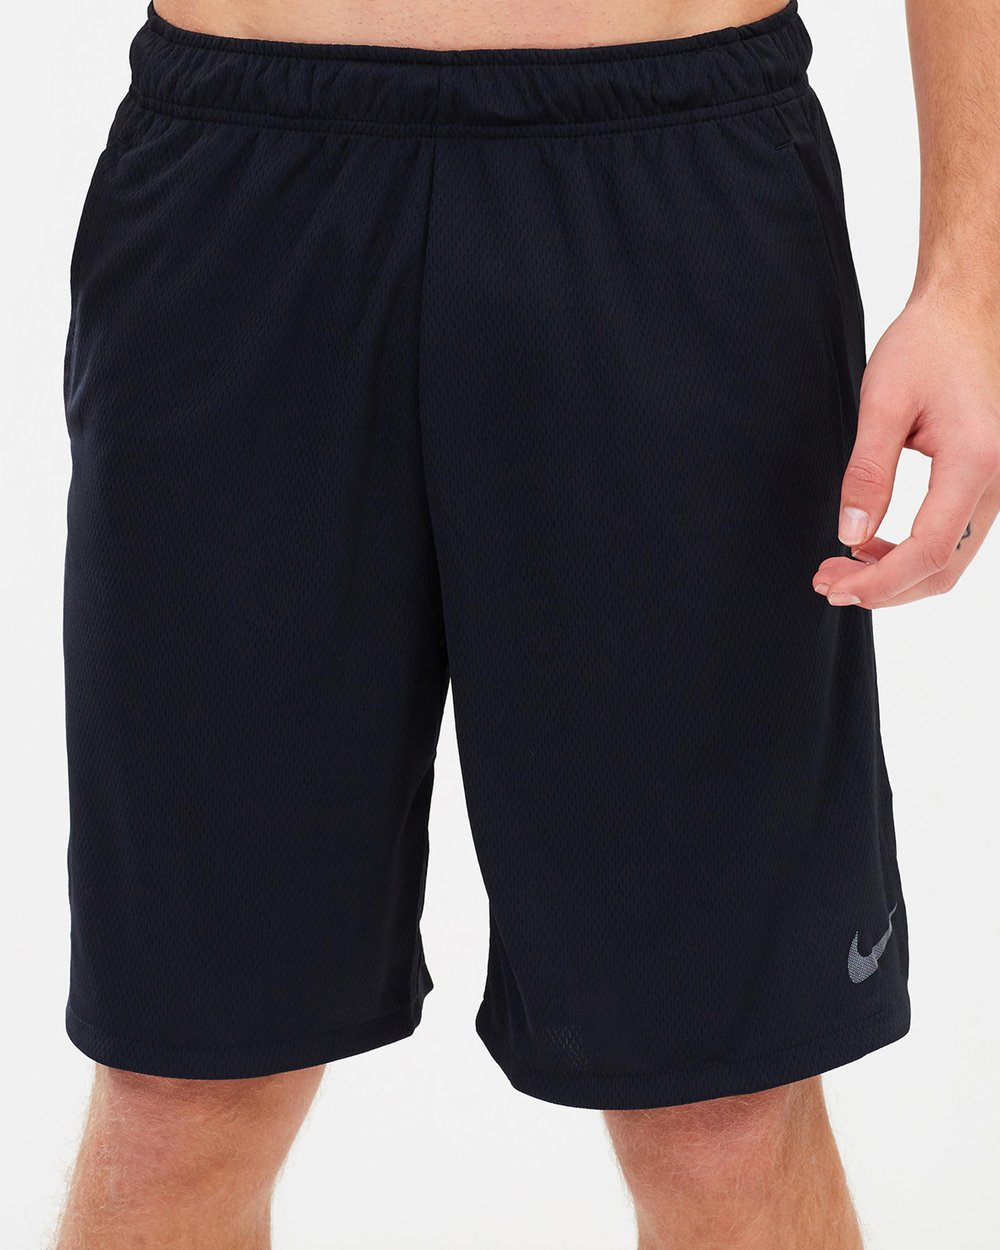 5a0c097049fcc Dri-FIT 4.0 Training Shorts by Nike Online | THE ICONIC | Australia